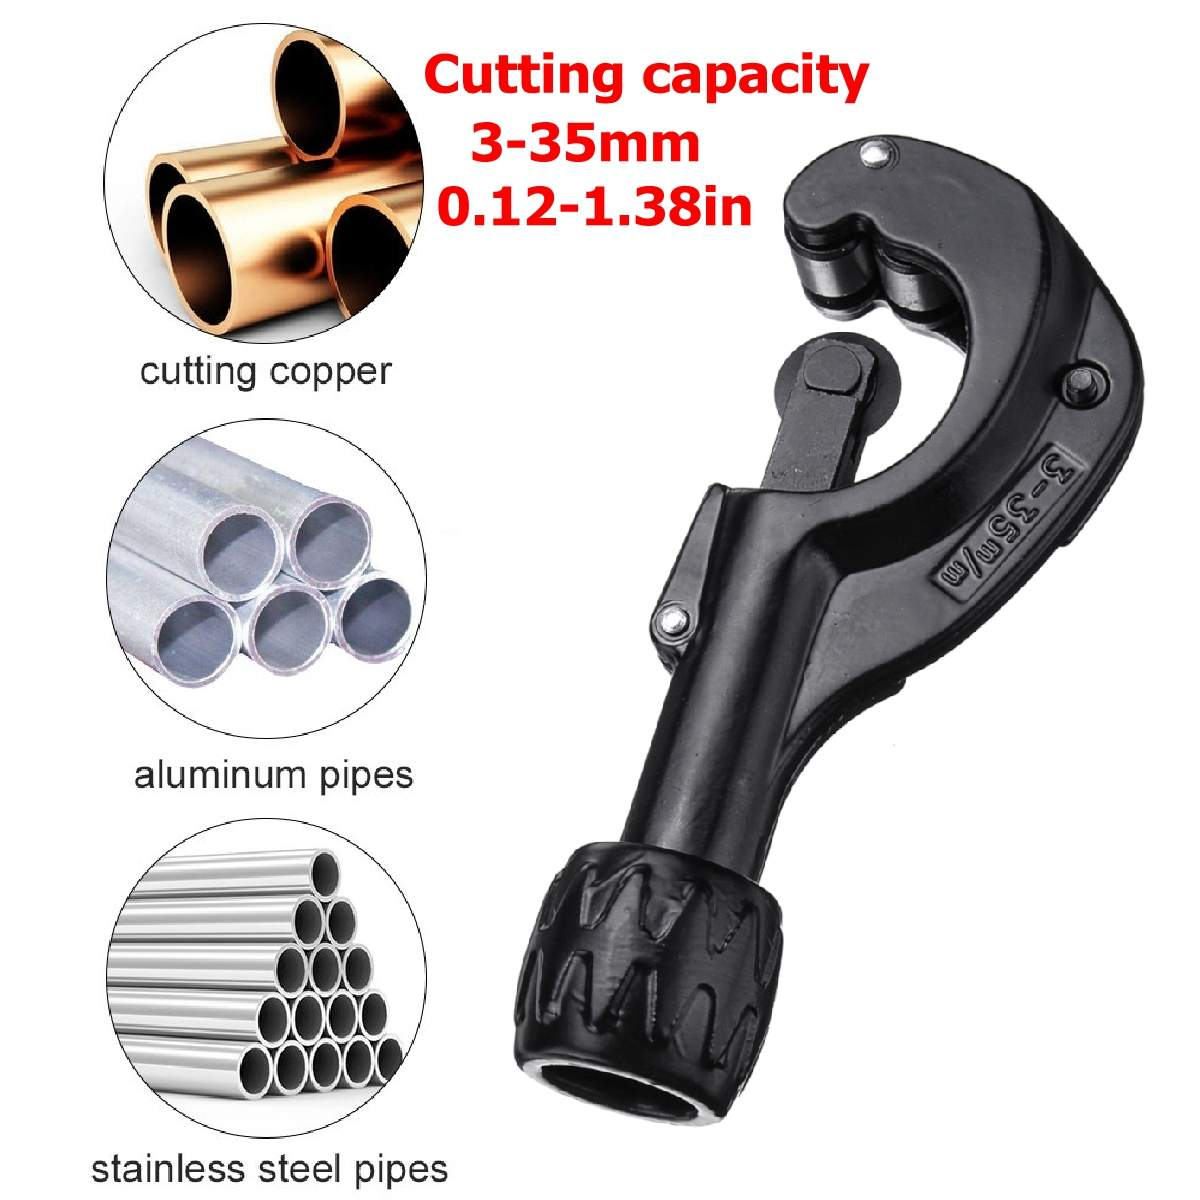 Copper Vinyl Brass Pipes Tube Cutter Scissor Cutting Tool For 3mm-35mm G Type Metal/Plastic Tube Knife Cut Plumbing Tool